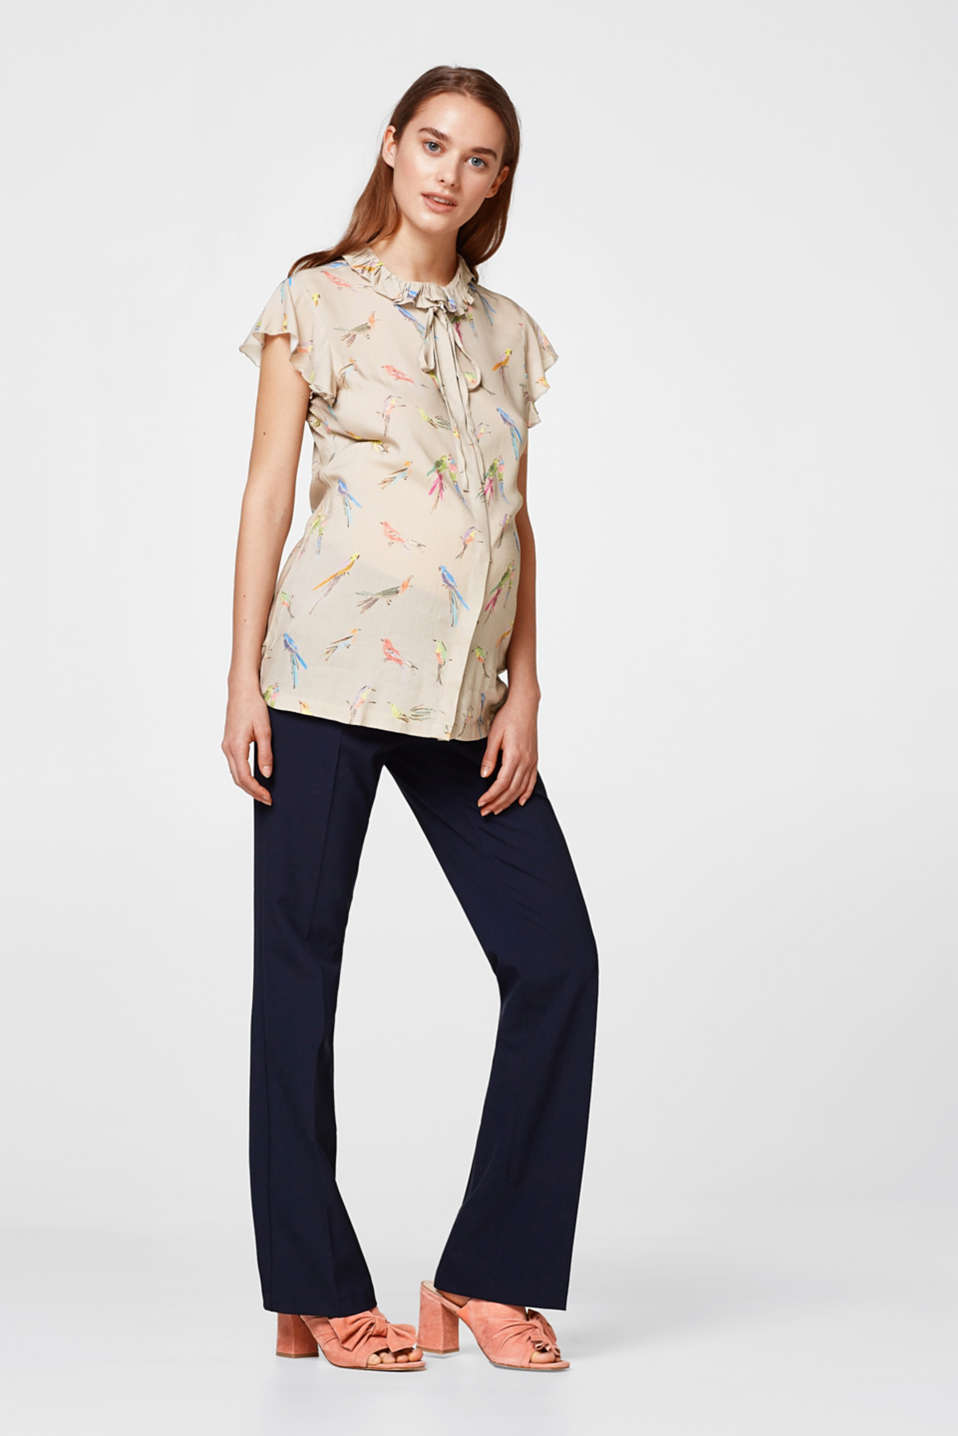 Esprit - Printed blouse with a parrot print